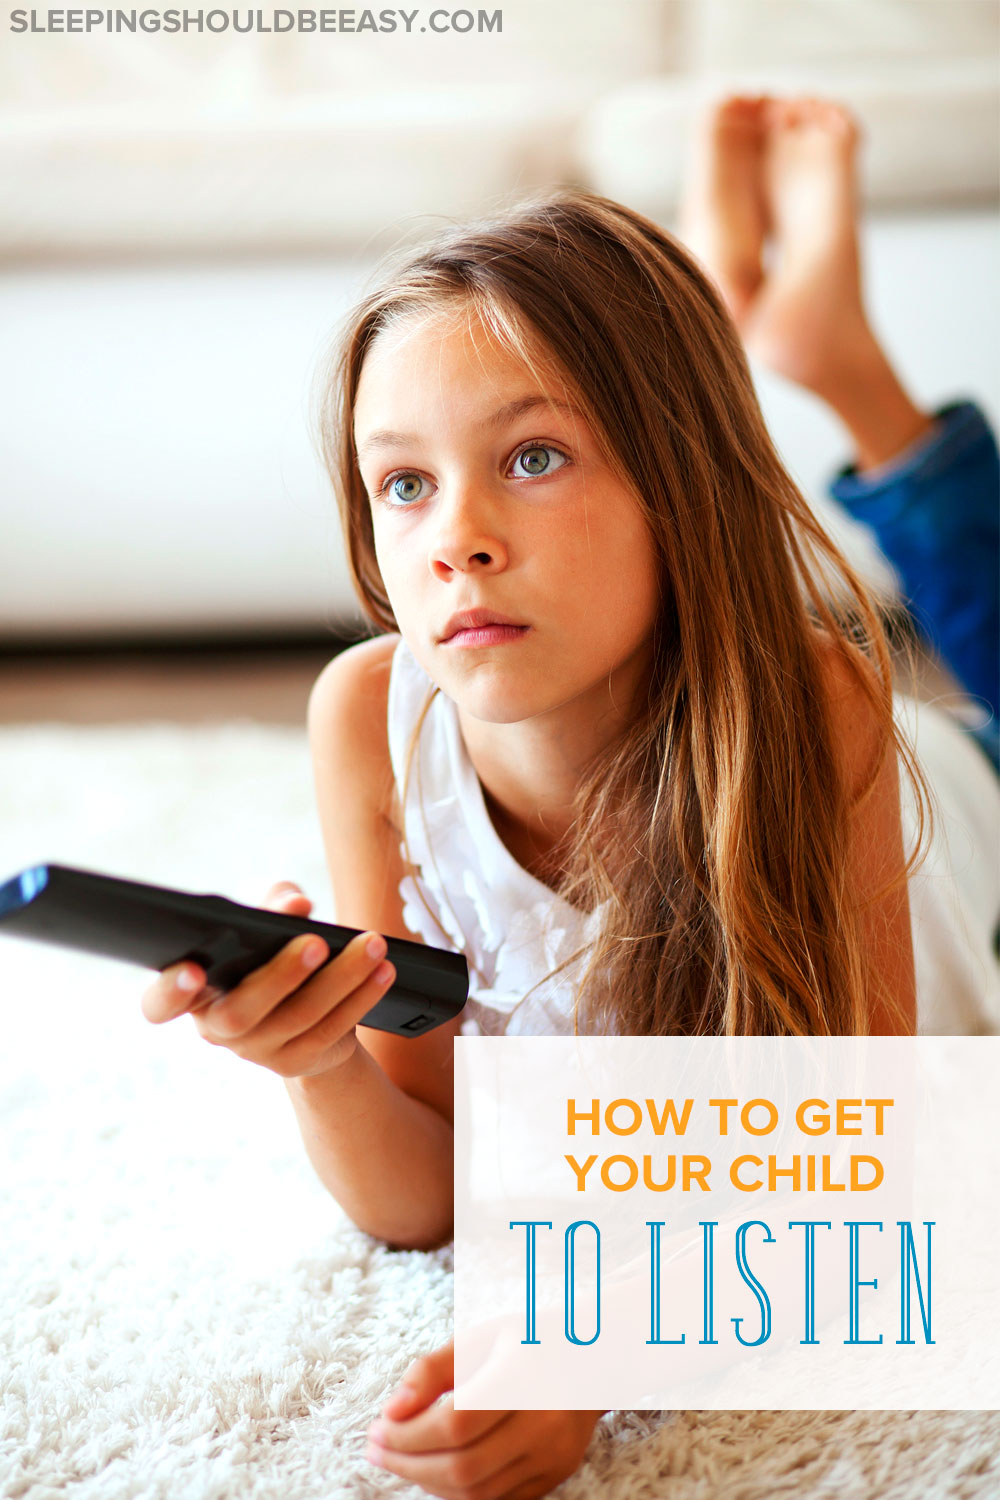 You're embarrassed to admit it, but it takes several tries to get your child to listen to you. You wonder how to get your child to listen to you without yelling. Here are 9 ways on how to get your child to listen and behave.